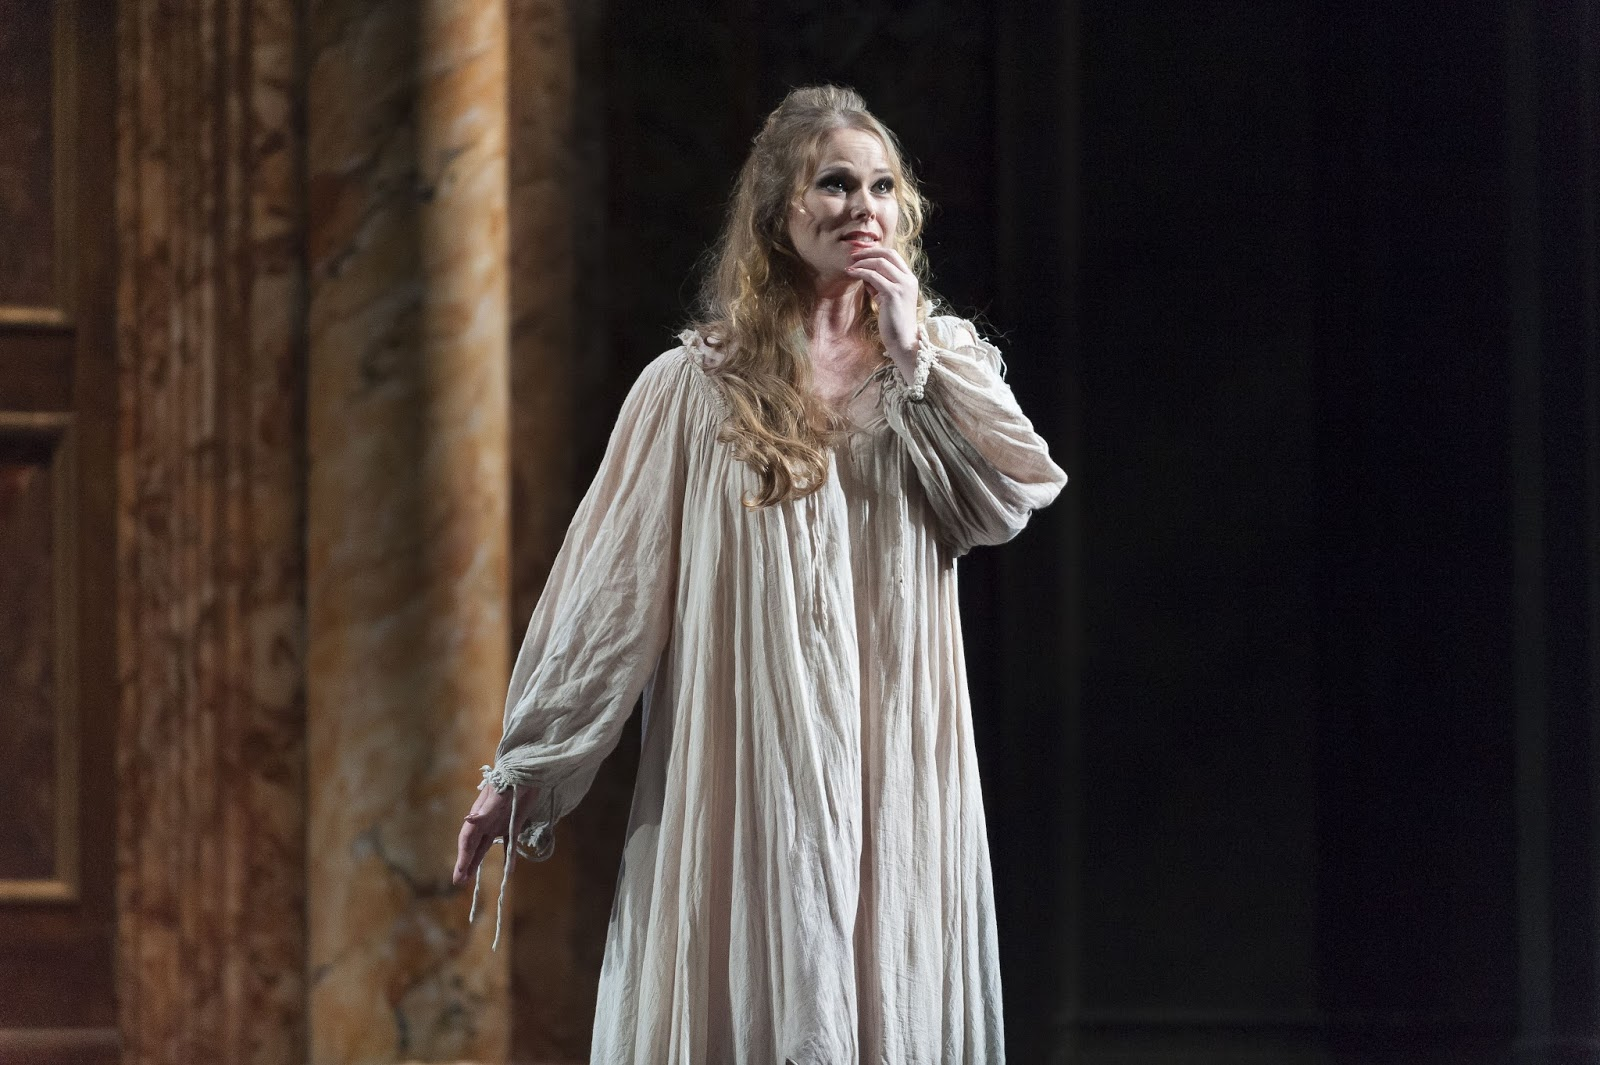 SINGER SPOTLIGHT: Soprano JESSICA PRATT as Gilda in Teatro de la Maestranza's 2013 production of Giuseppe Verdi's RIGOLETTO in Sevilla, Spain [Photo by Jesús Morón, © by Teatro de la Maestranza]